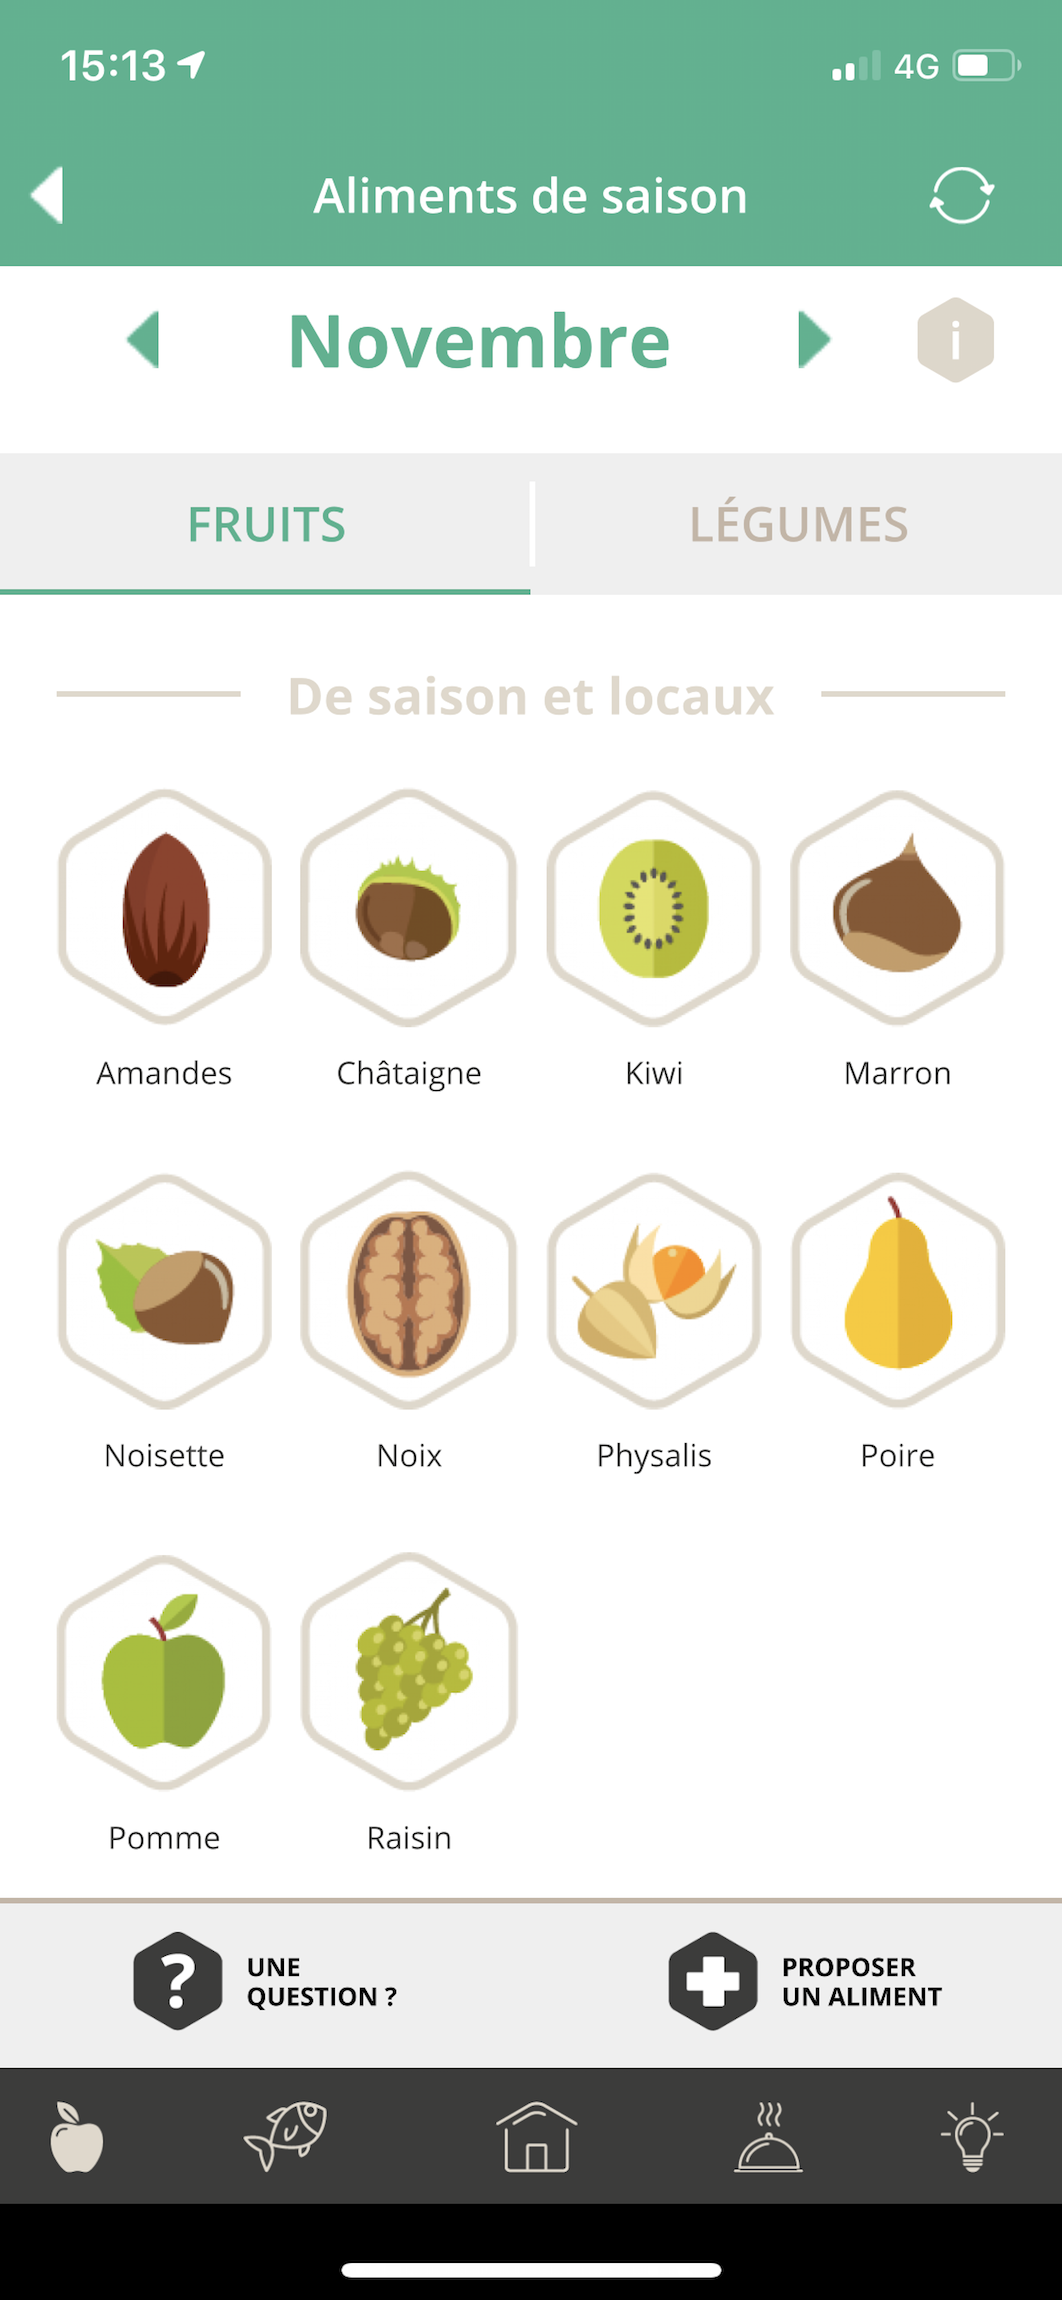 Classification des légumes dans l'application Etiquettable